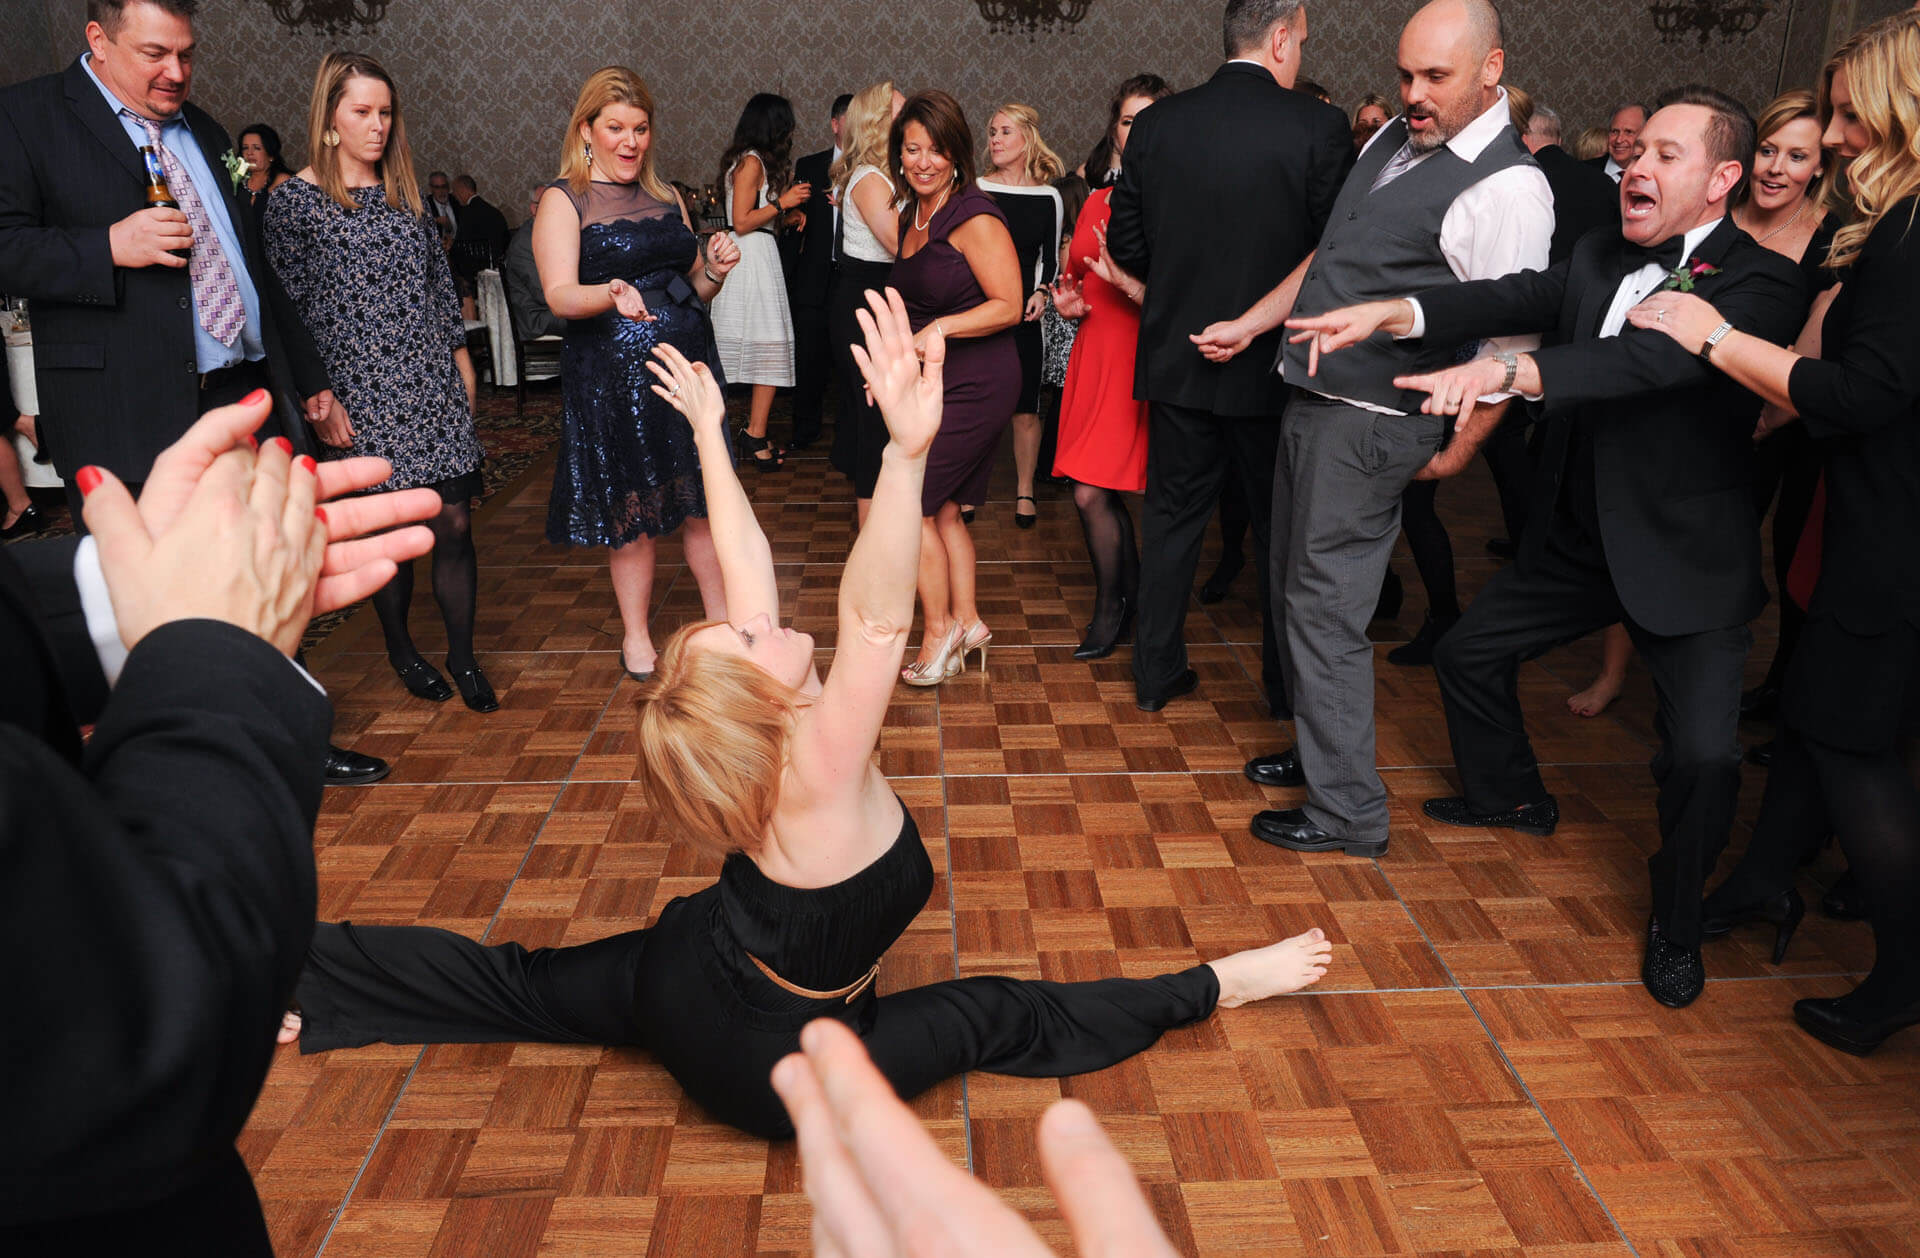 Candid wedding photography showing a guest doing the splits during a dance at a wedding reception at the Royal Park Hotel in Rochester, Michigan.